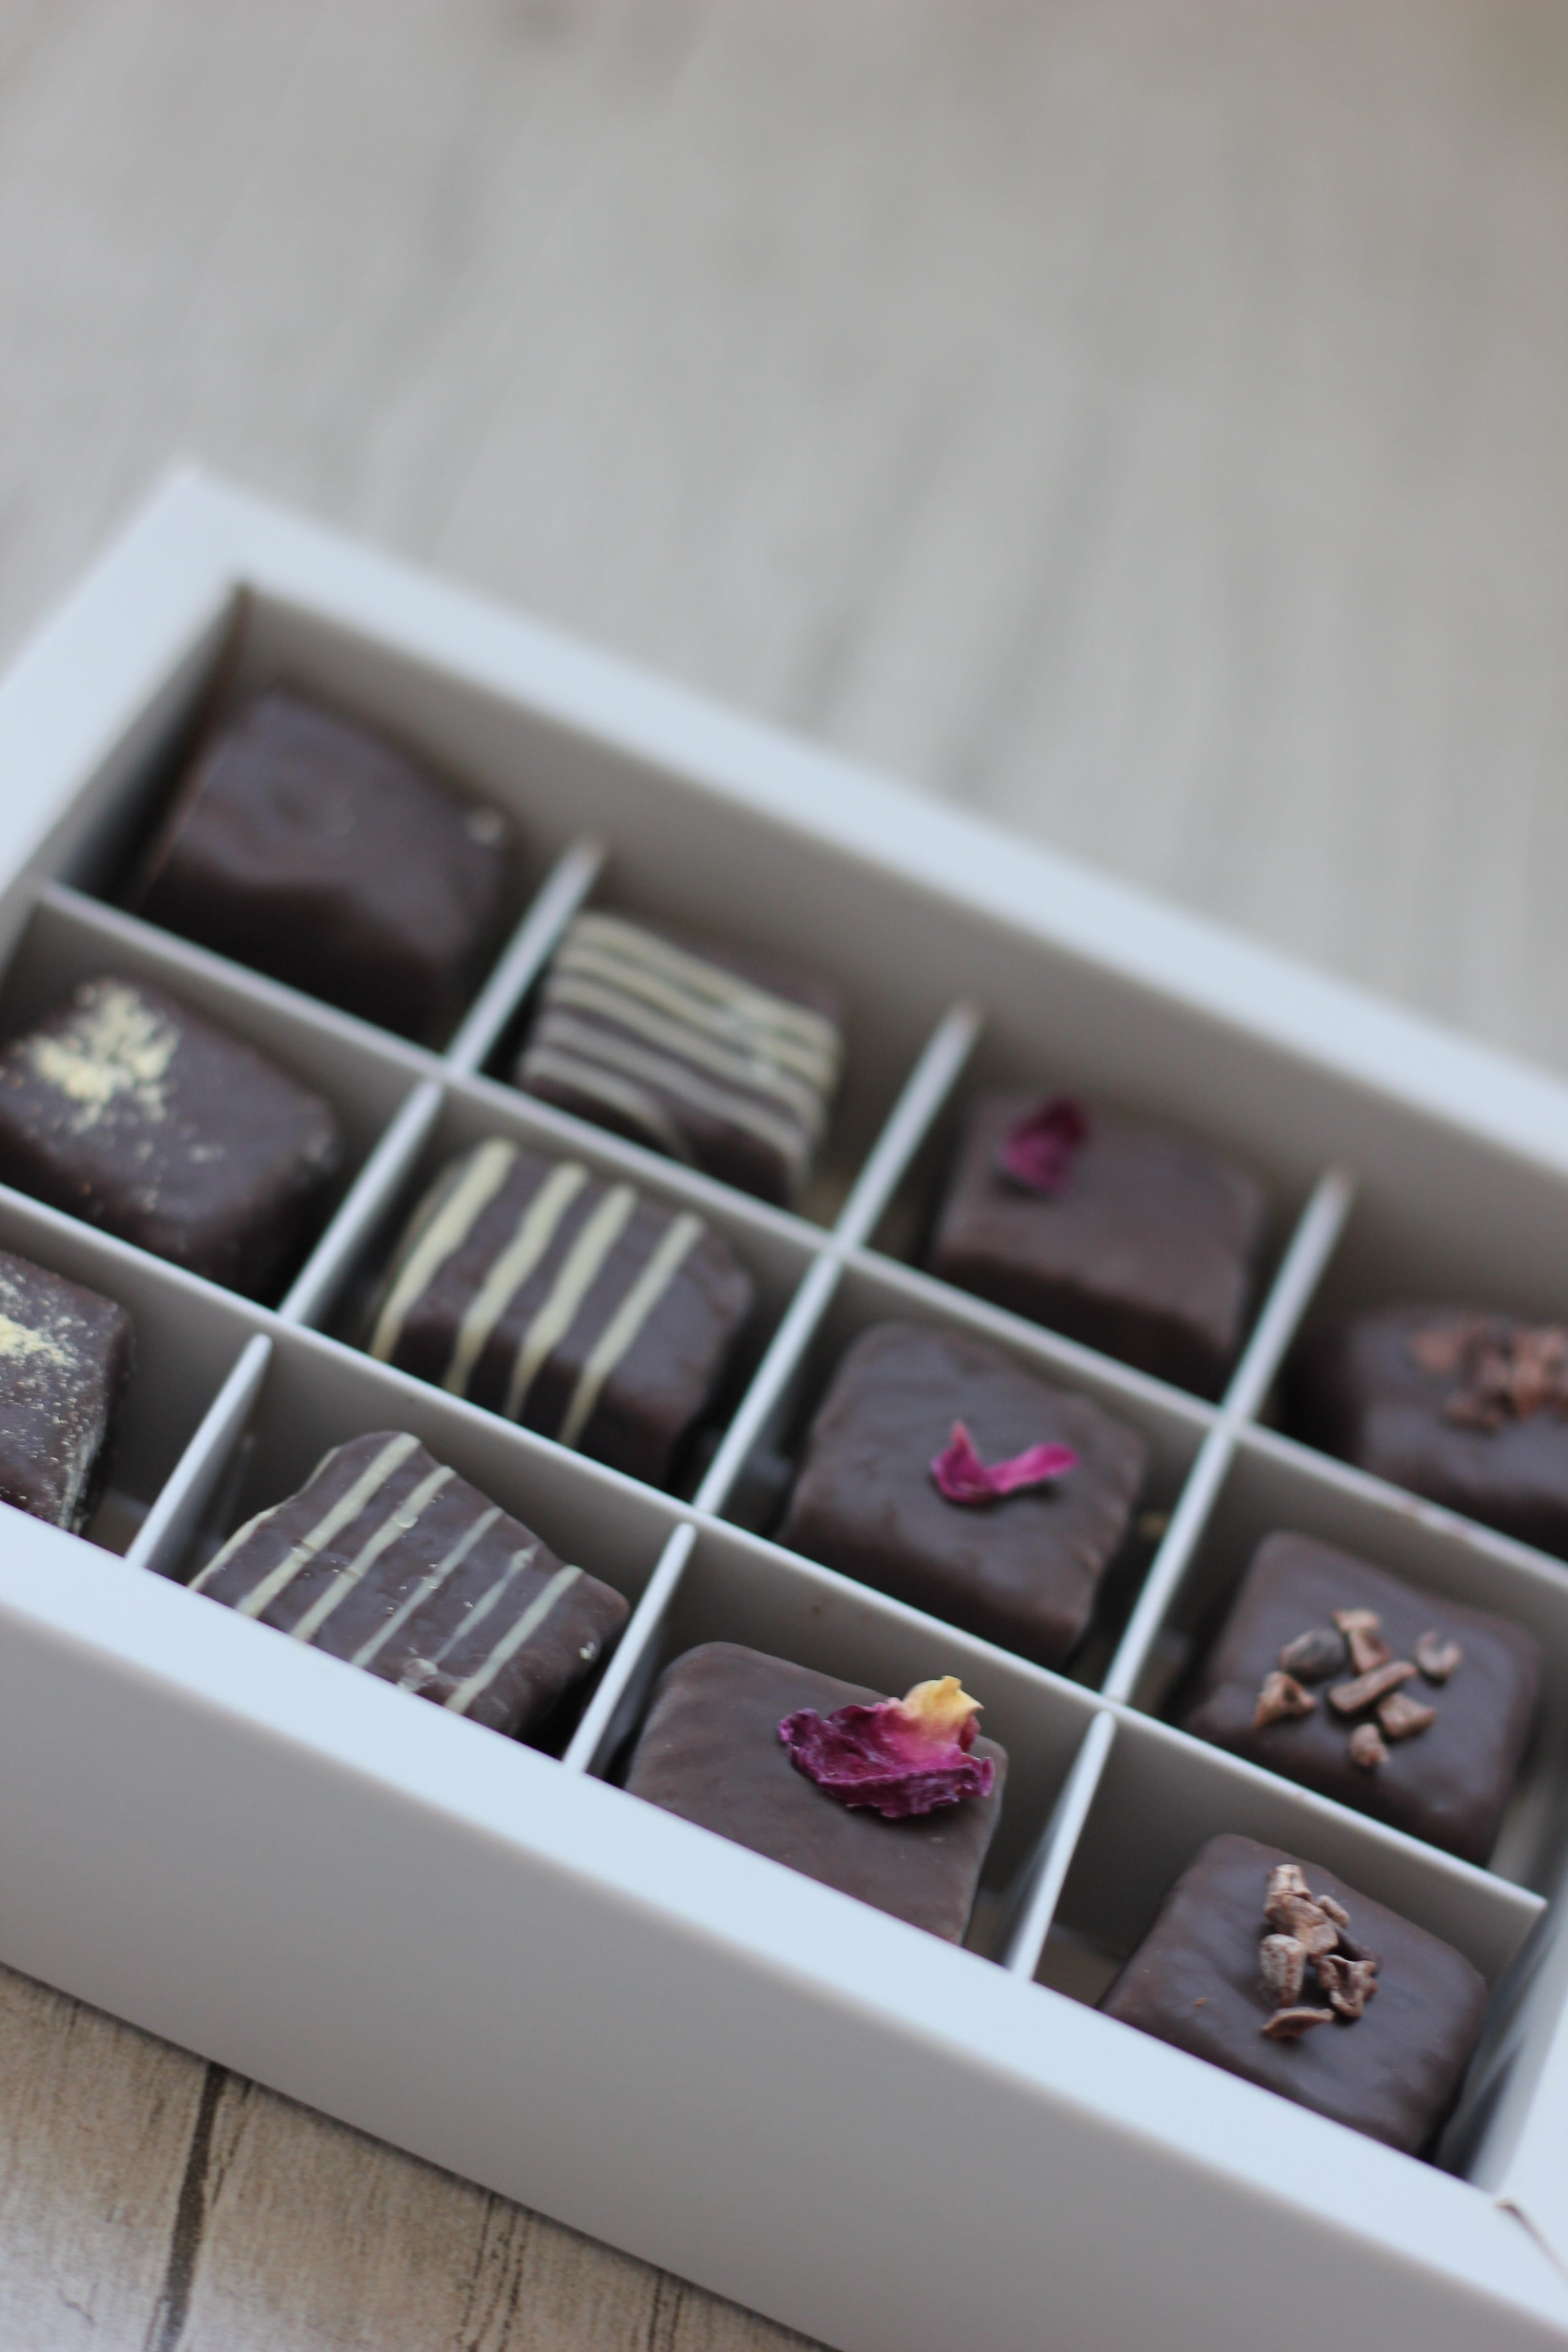 Chocolate & Date - Medium Box - 12 pieces